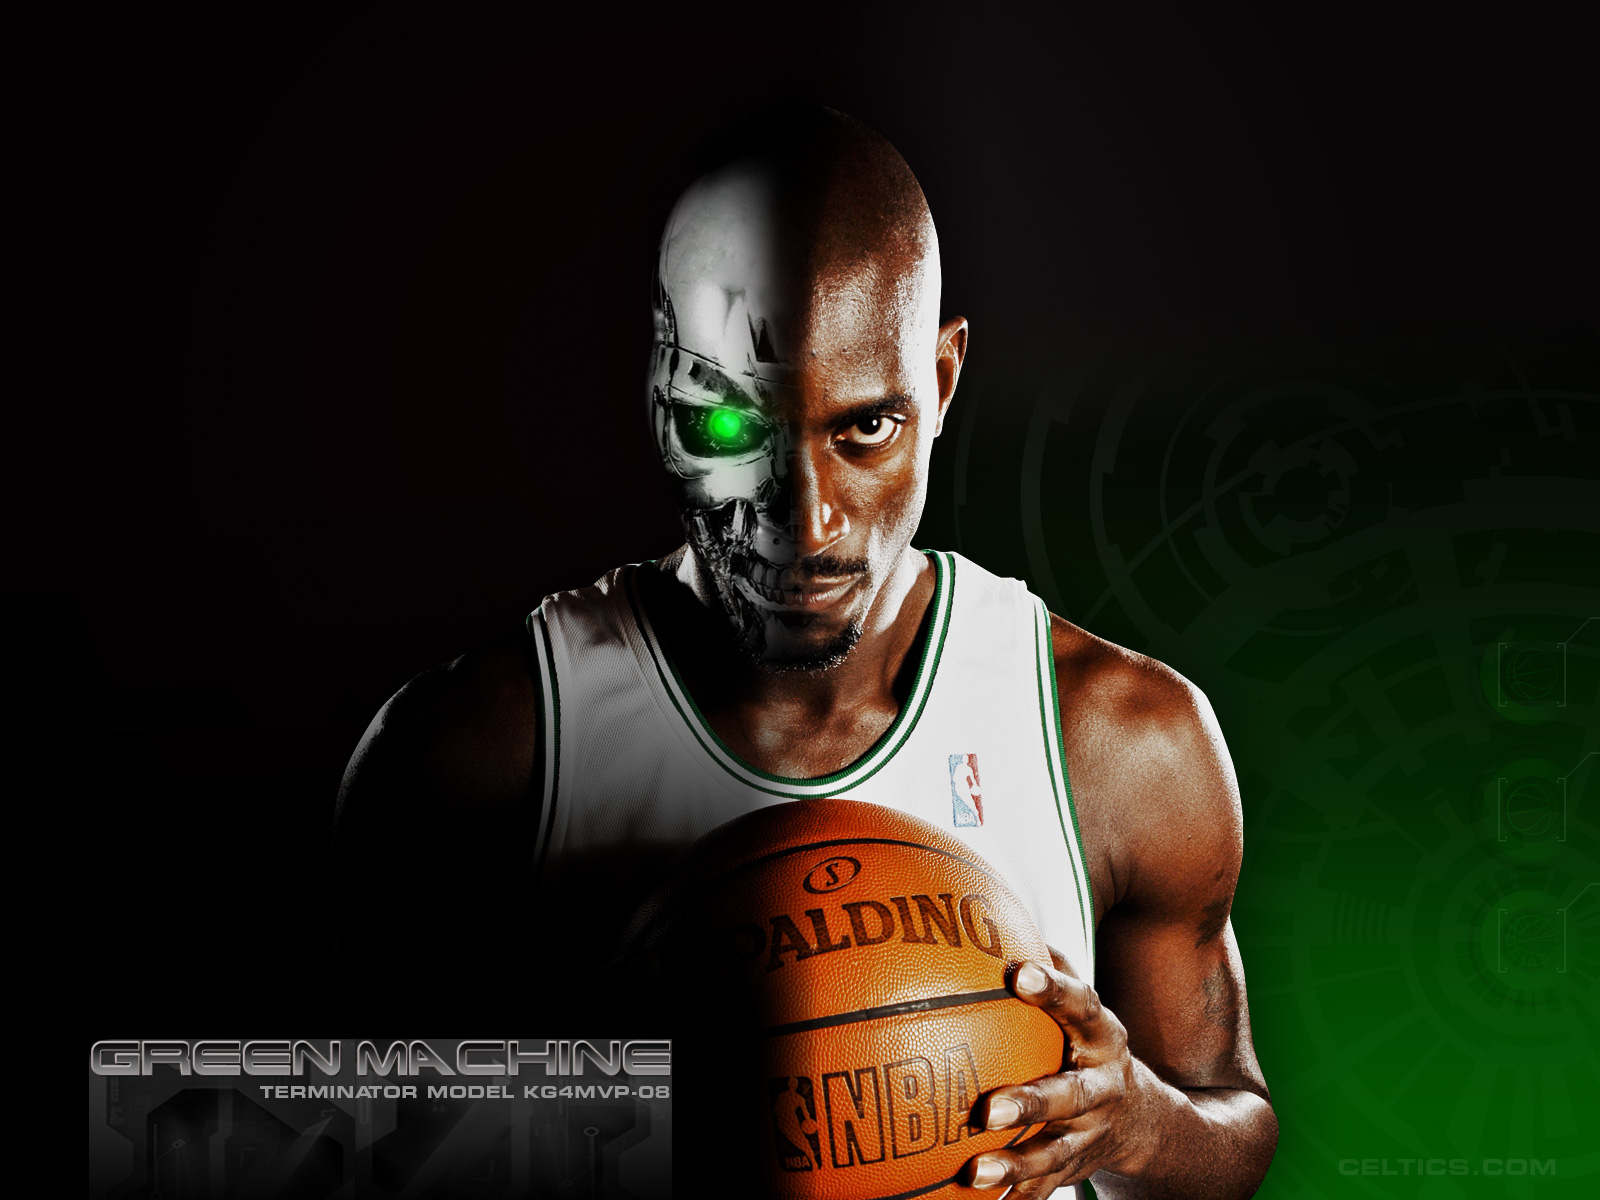 NBA Wallpaper PC Backgrounds LL Nba Wallpapers HD Desktop Images And Pictures 1600x1200